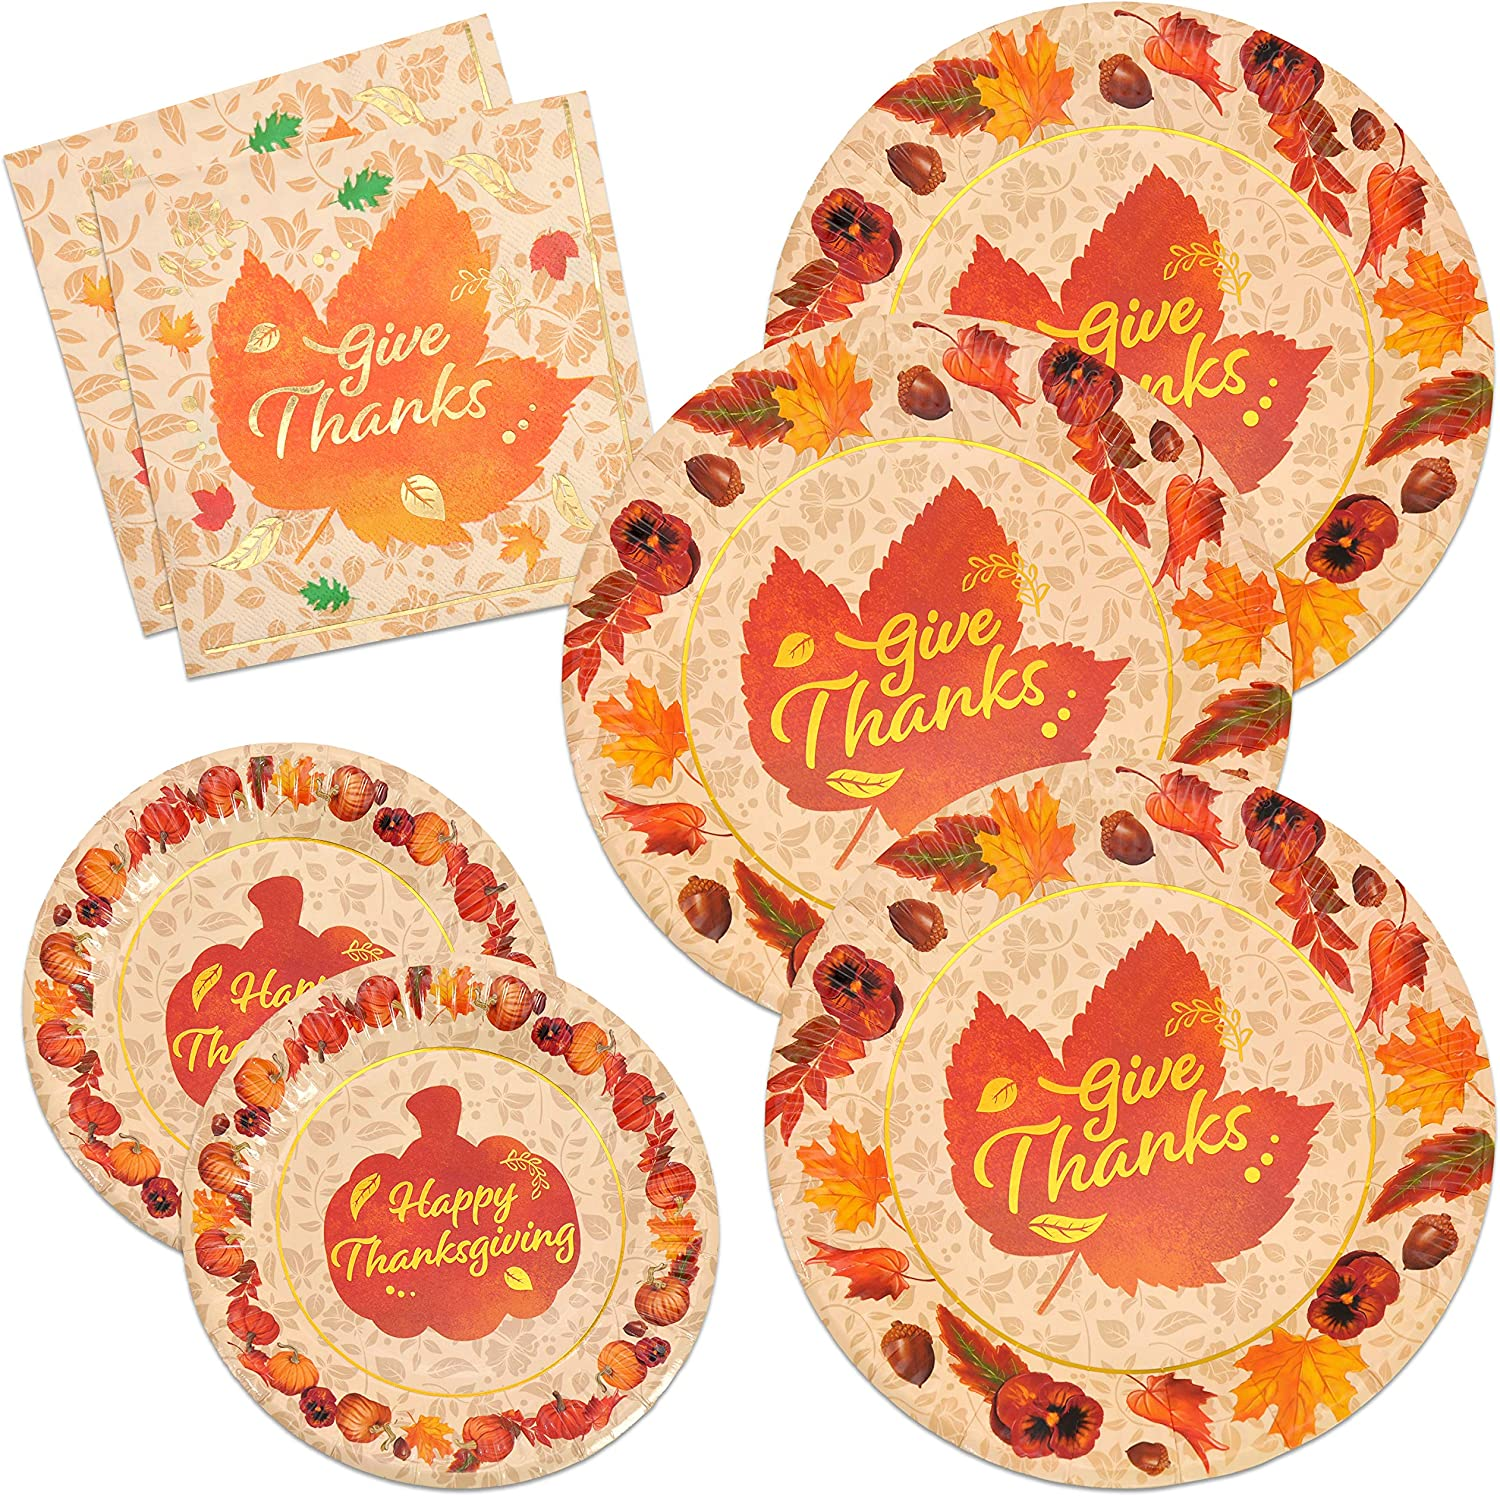 Thanksgiving Paper Plates and Napkins Disposable Dinnerware Set for 48 guests Fall Theme Party Supplies give thanks Pumpkin Autumn Tableware Set in Elegant Gold Foil Fall Design